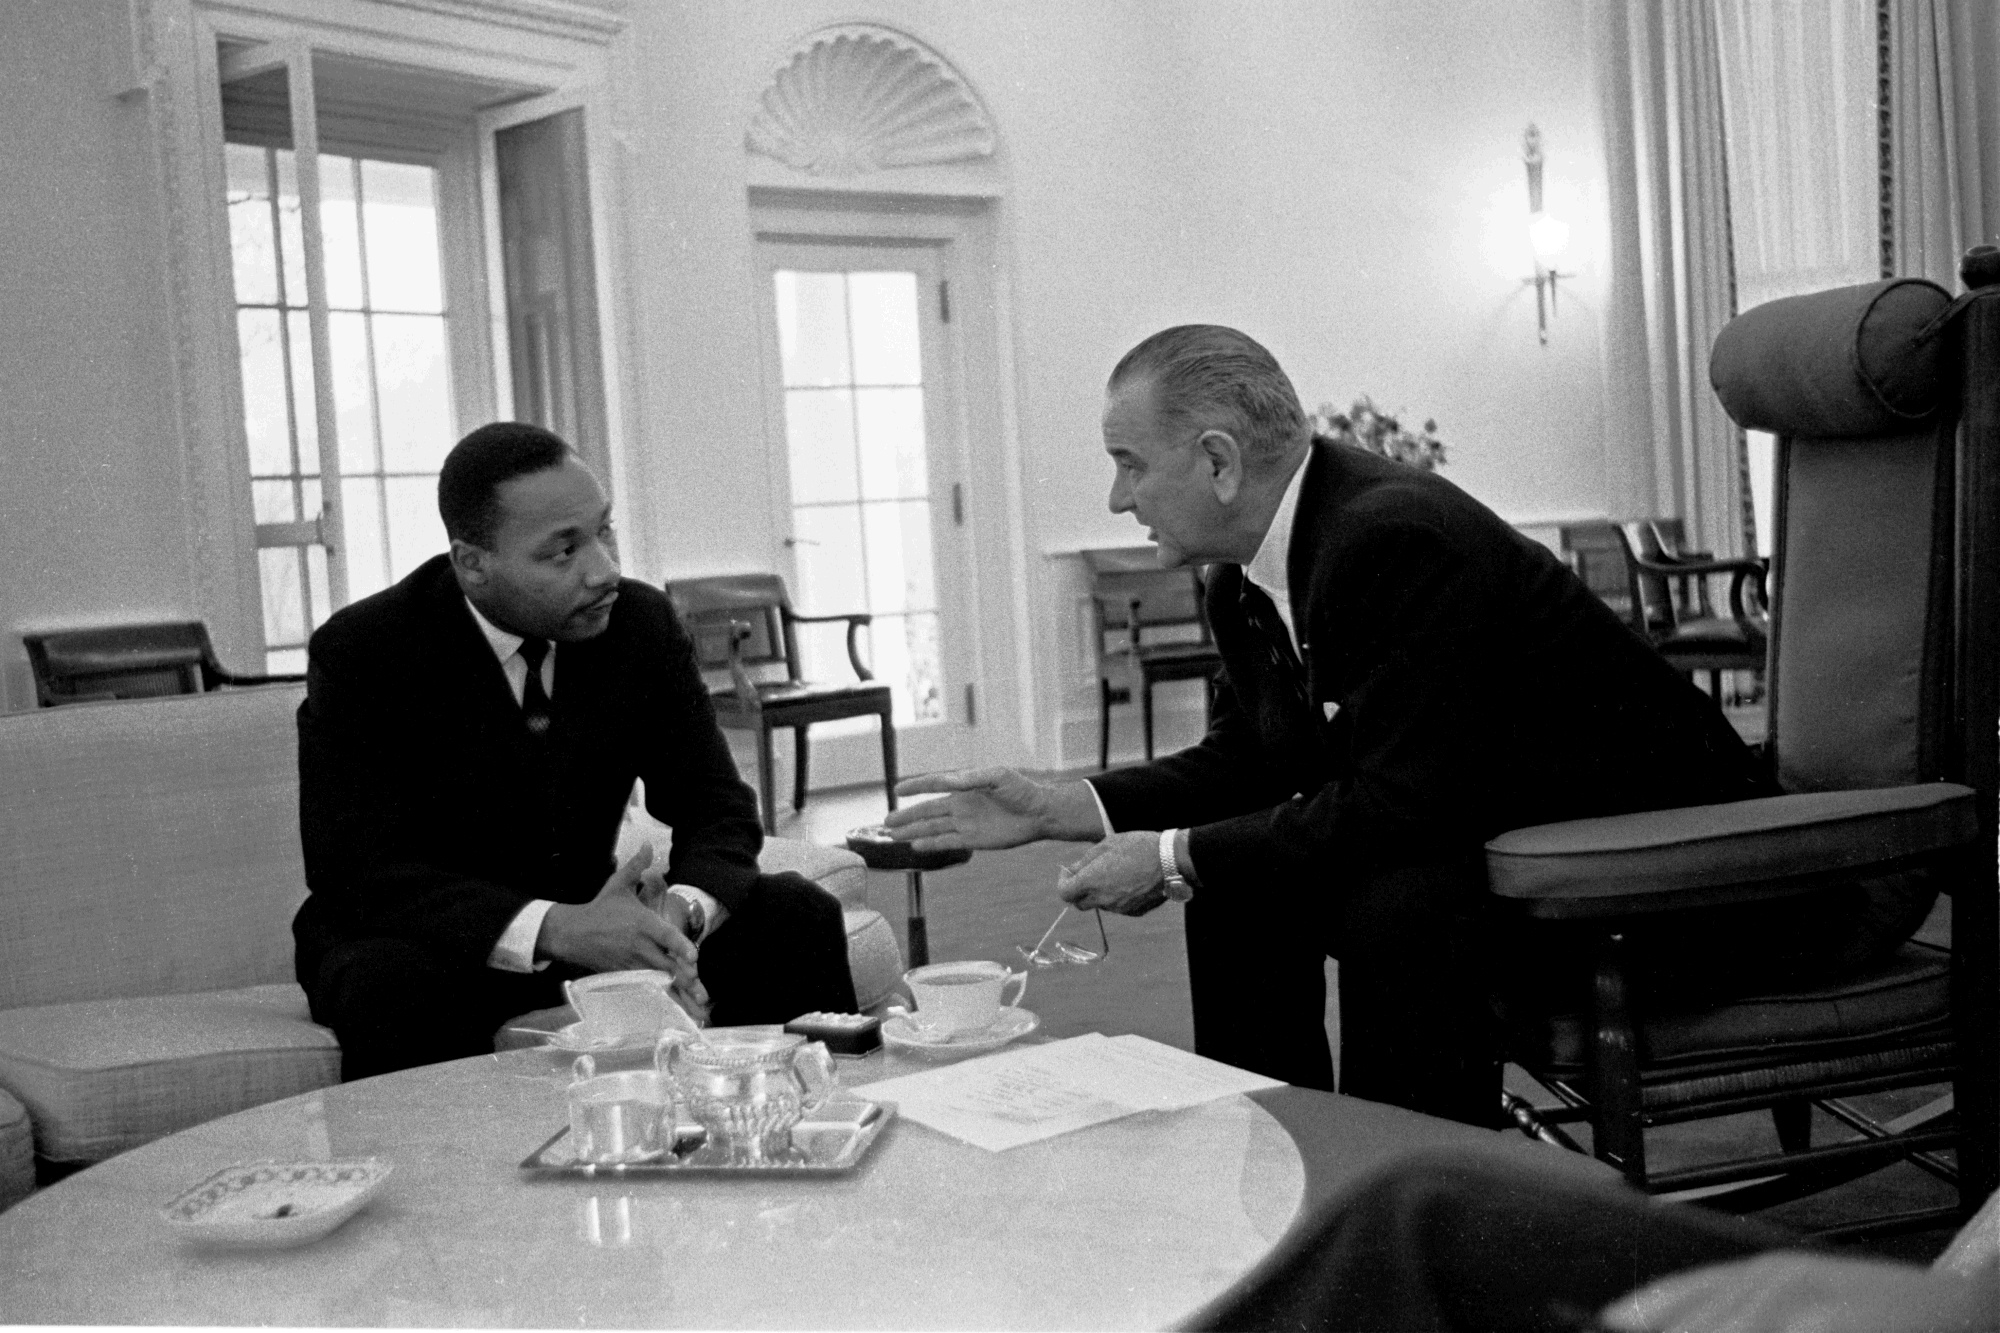 Martin Luther King Jr. and President Johnson